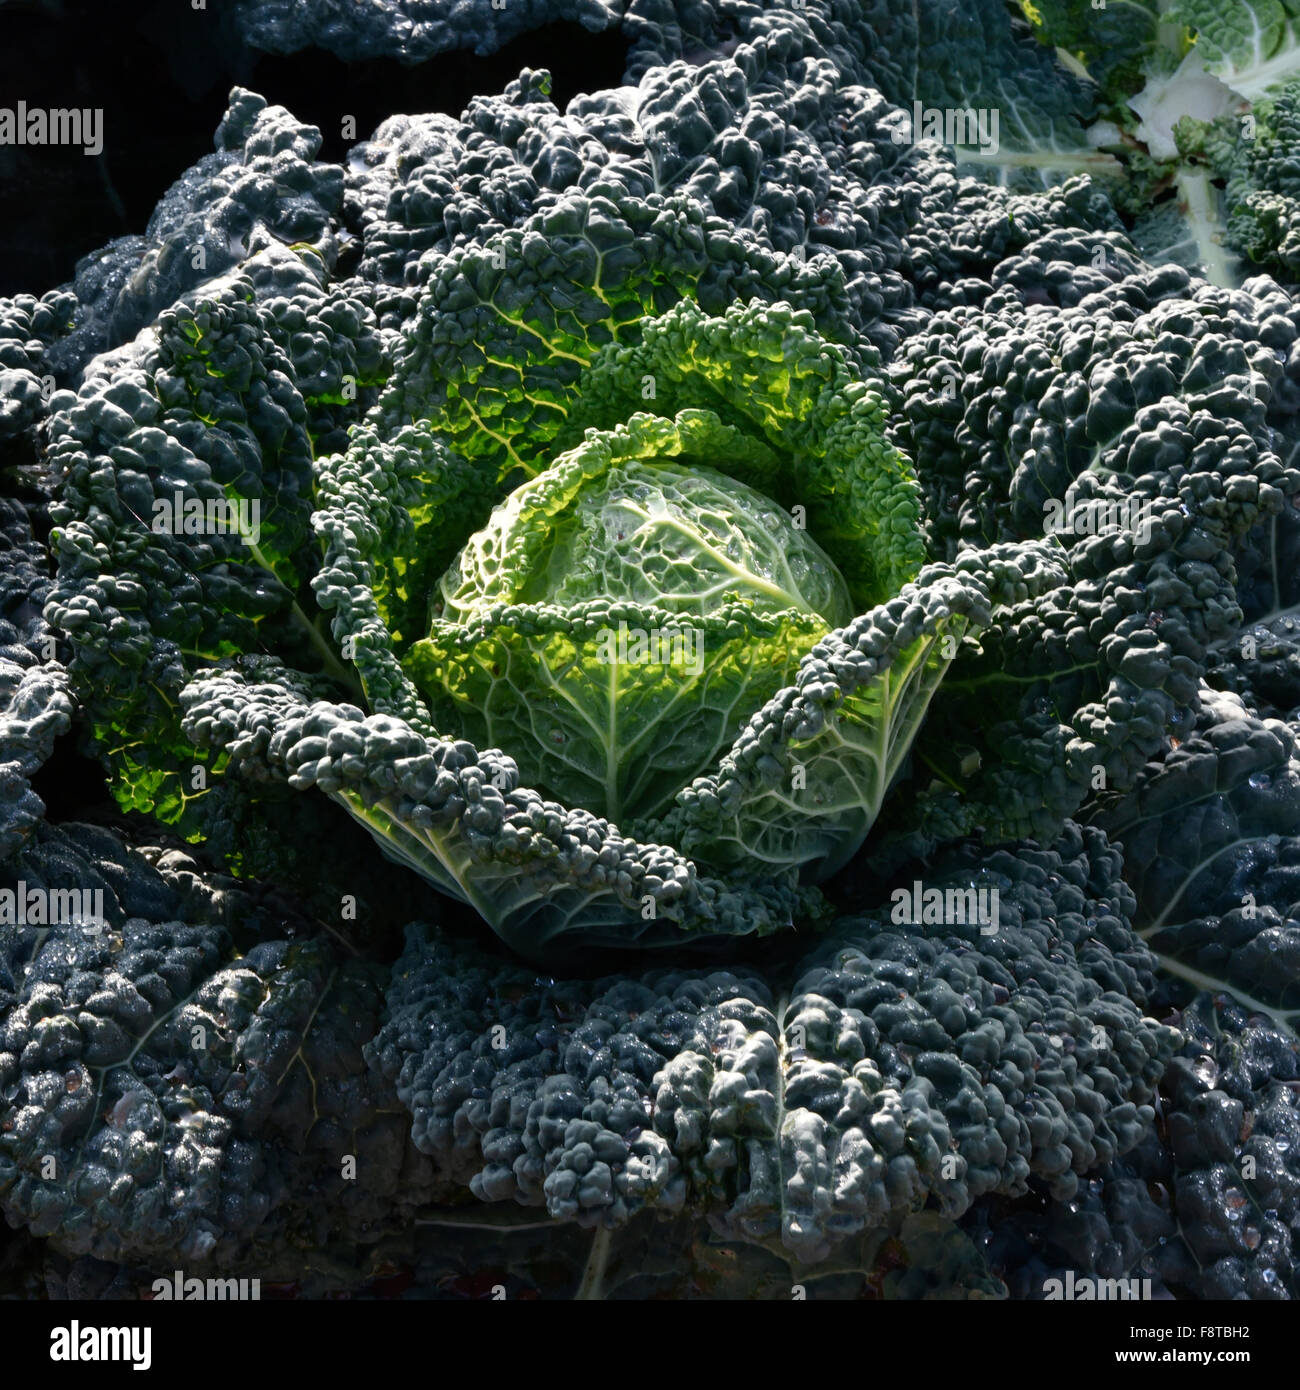 Cabbage cultivation on the coast of Puglia - Stock Image